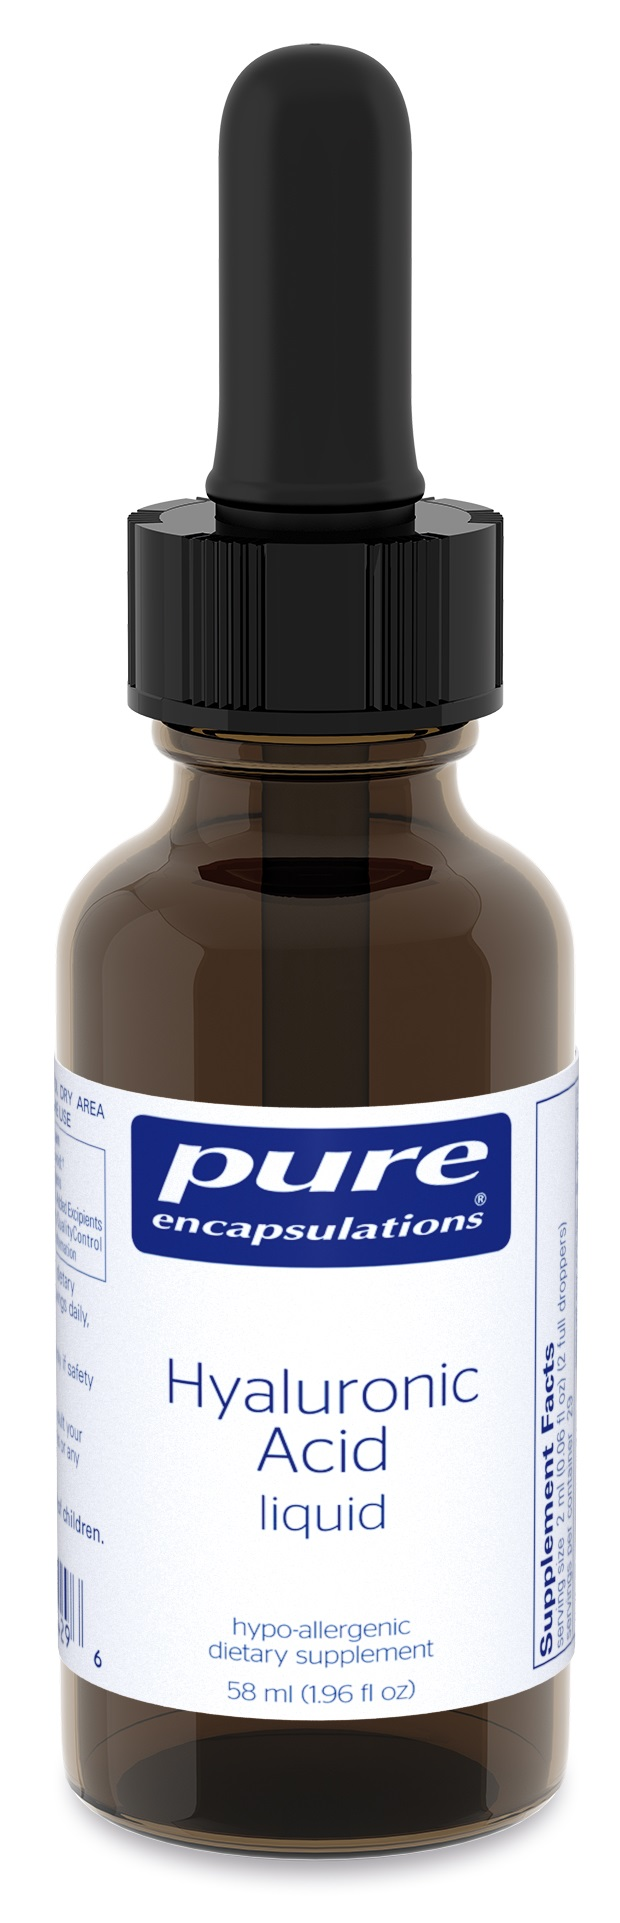 Pure Encapsulations Hyaluronic Acid liquid